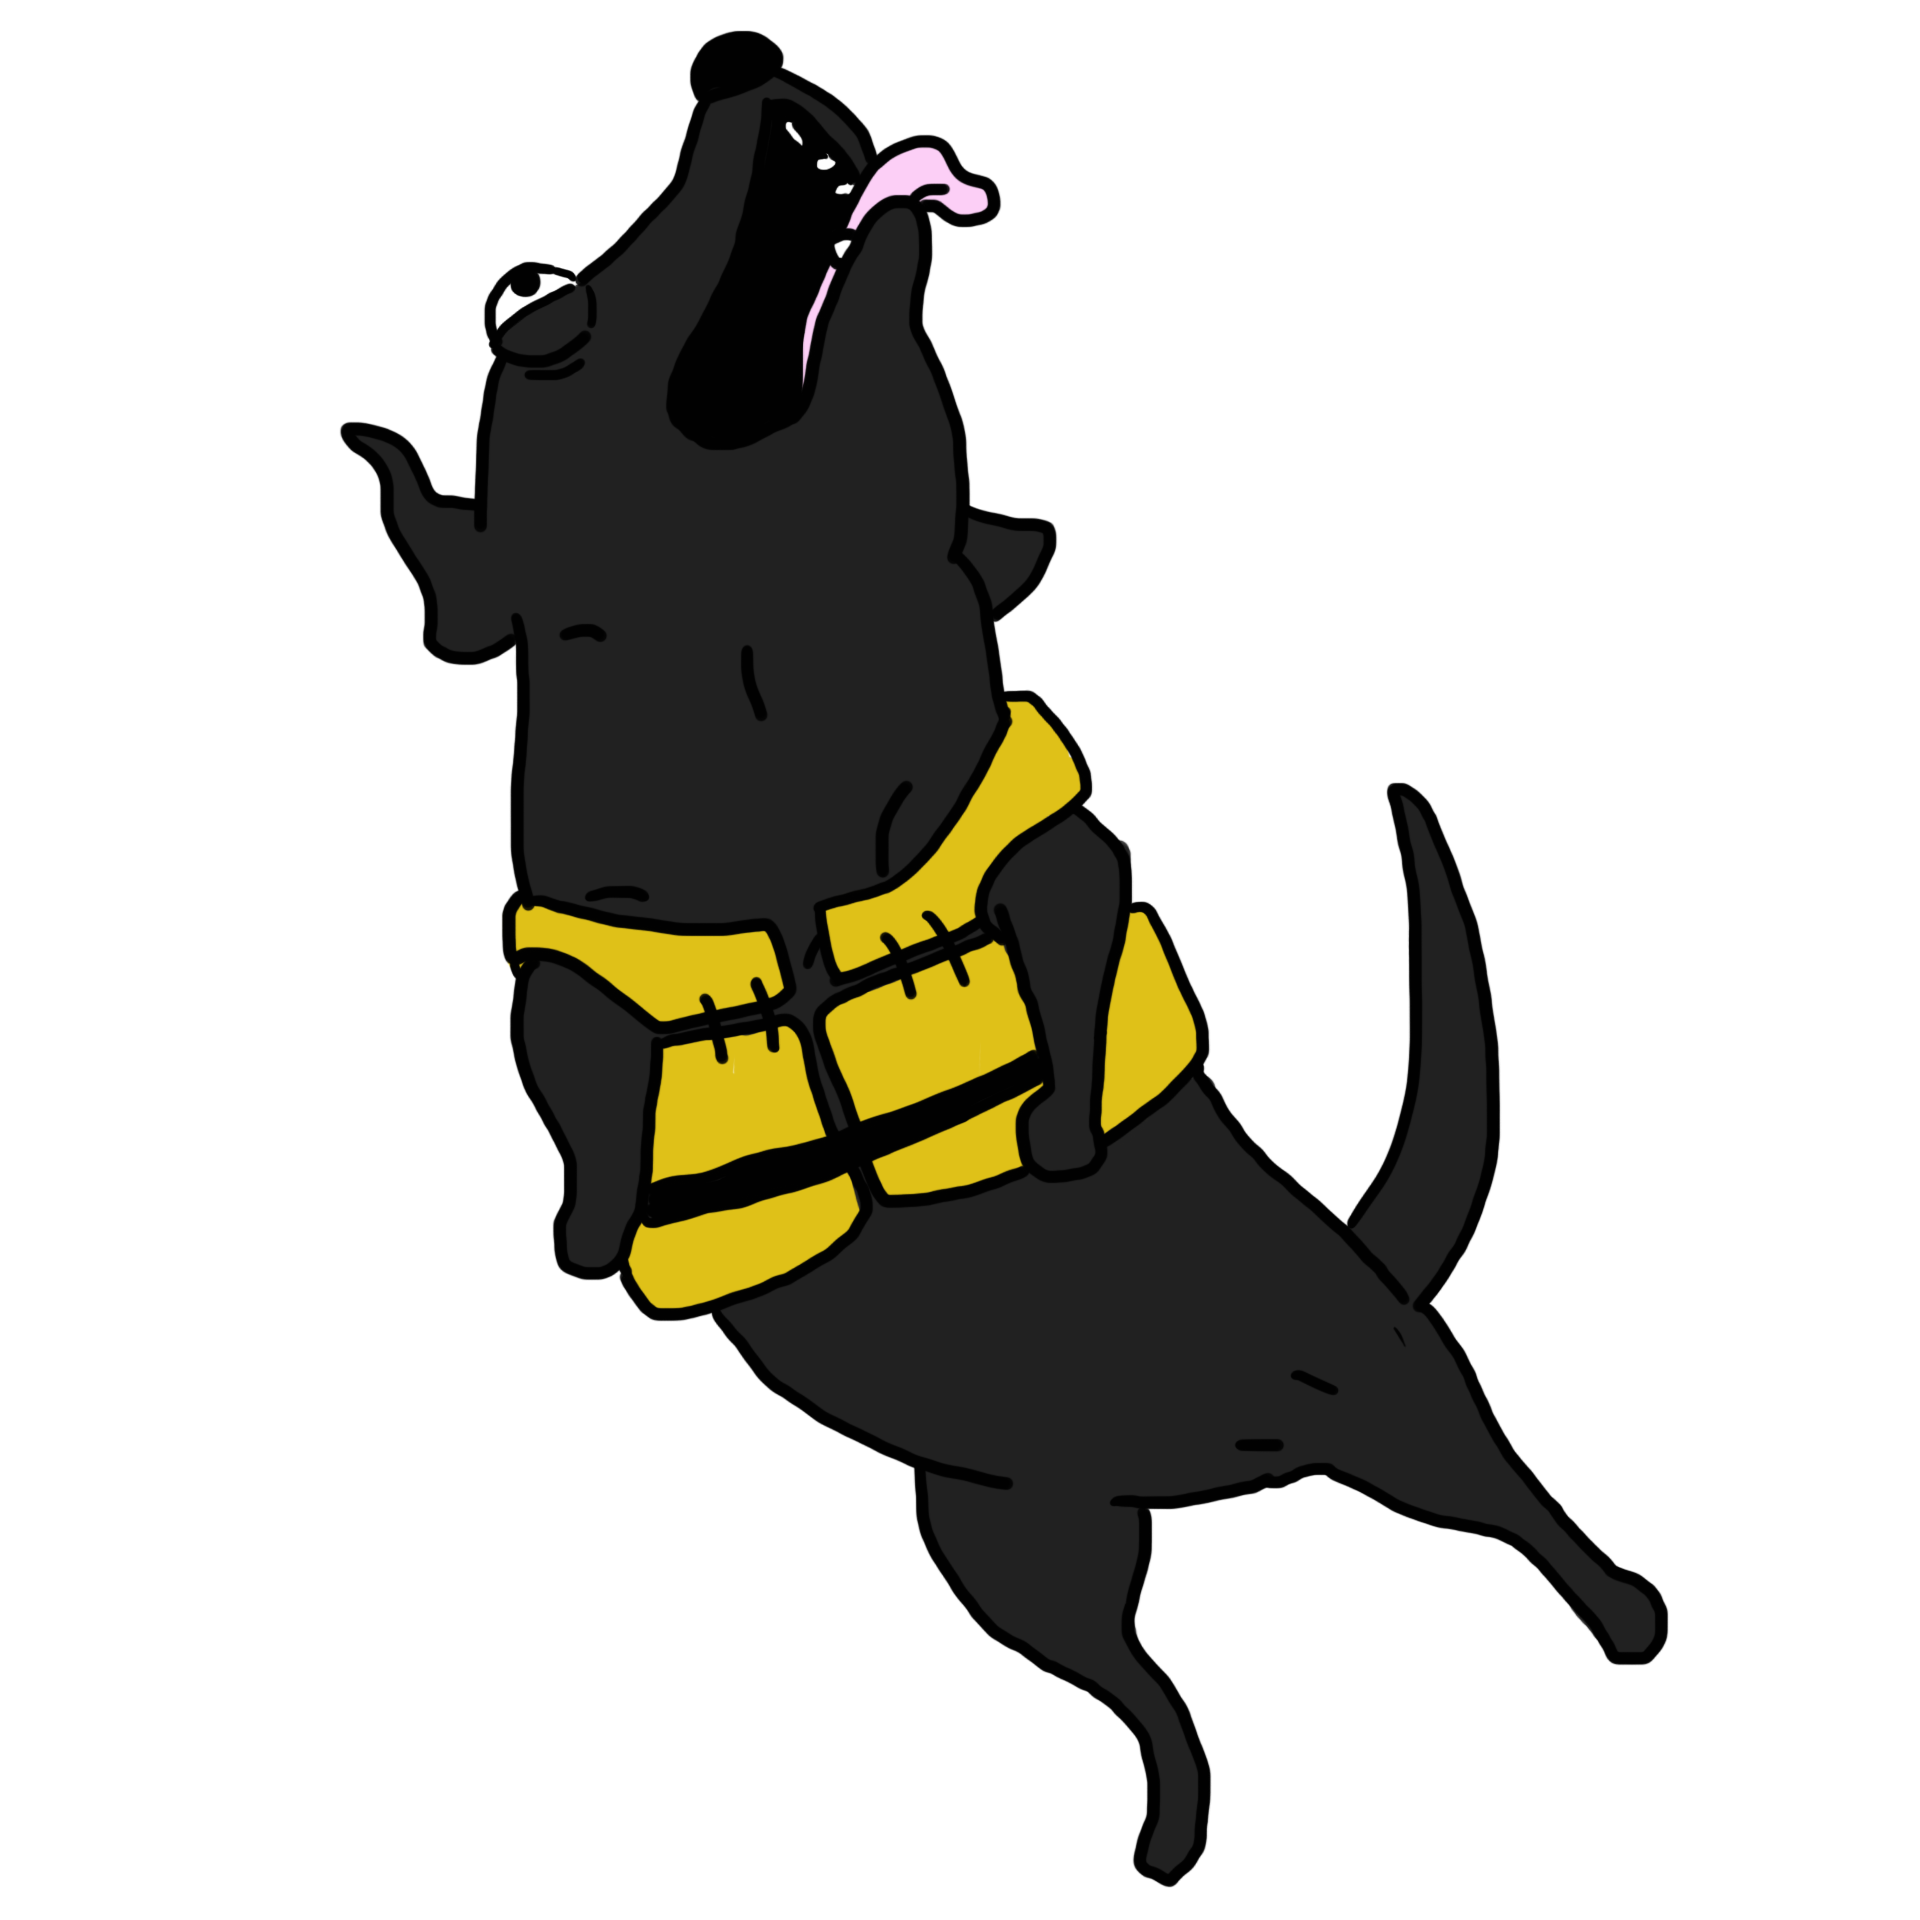 3.-Tucker-whale-poop-dog.png